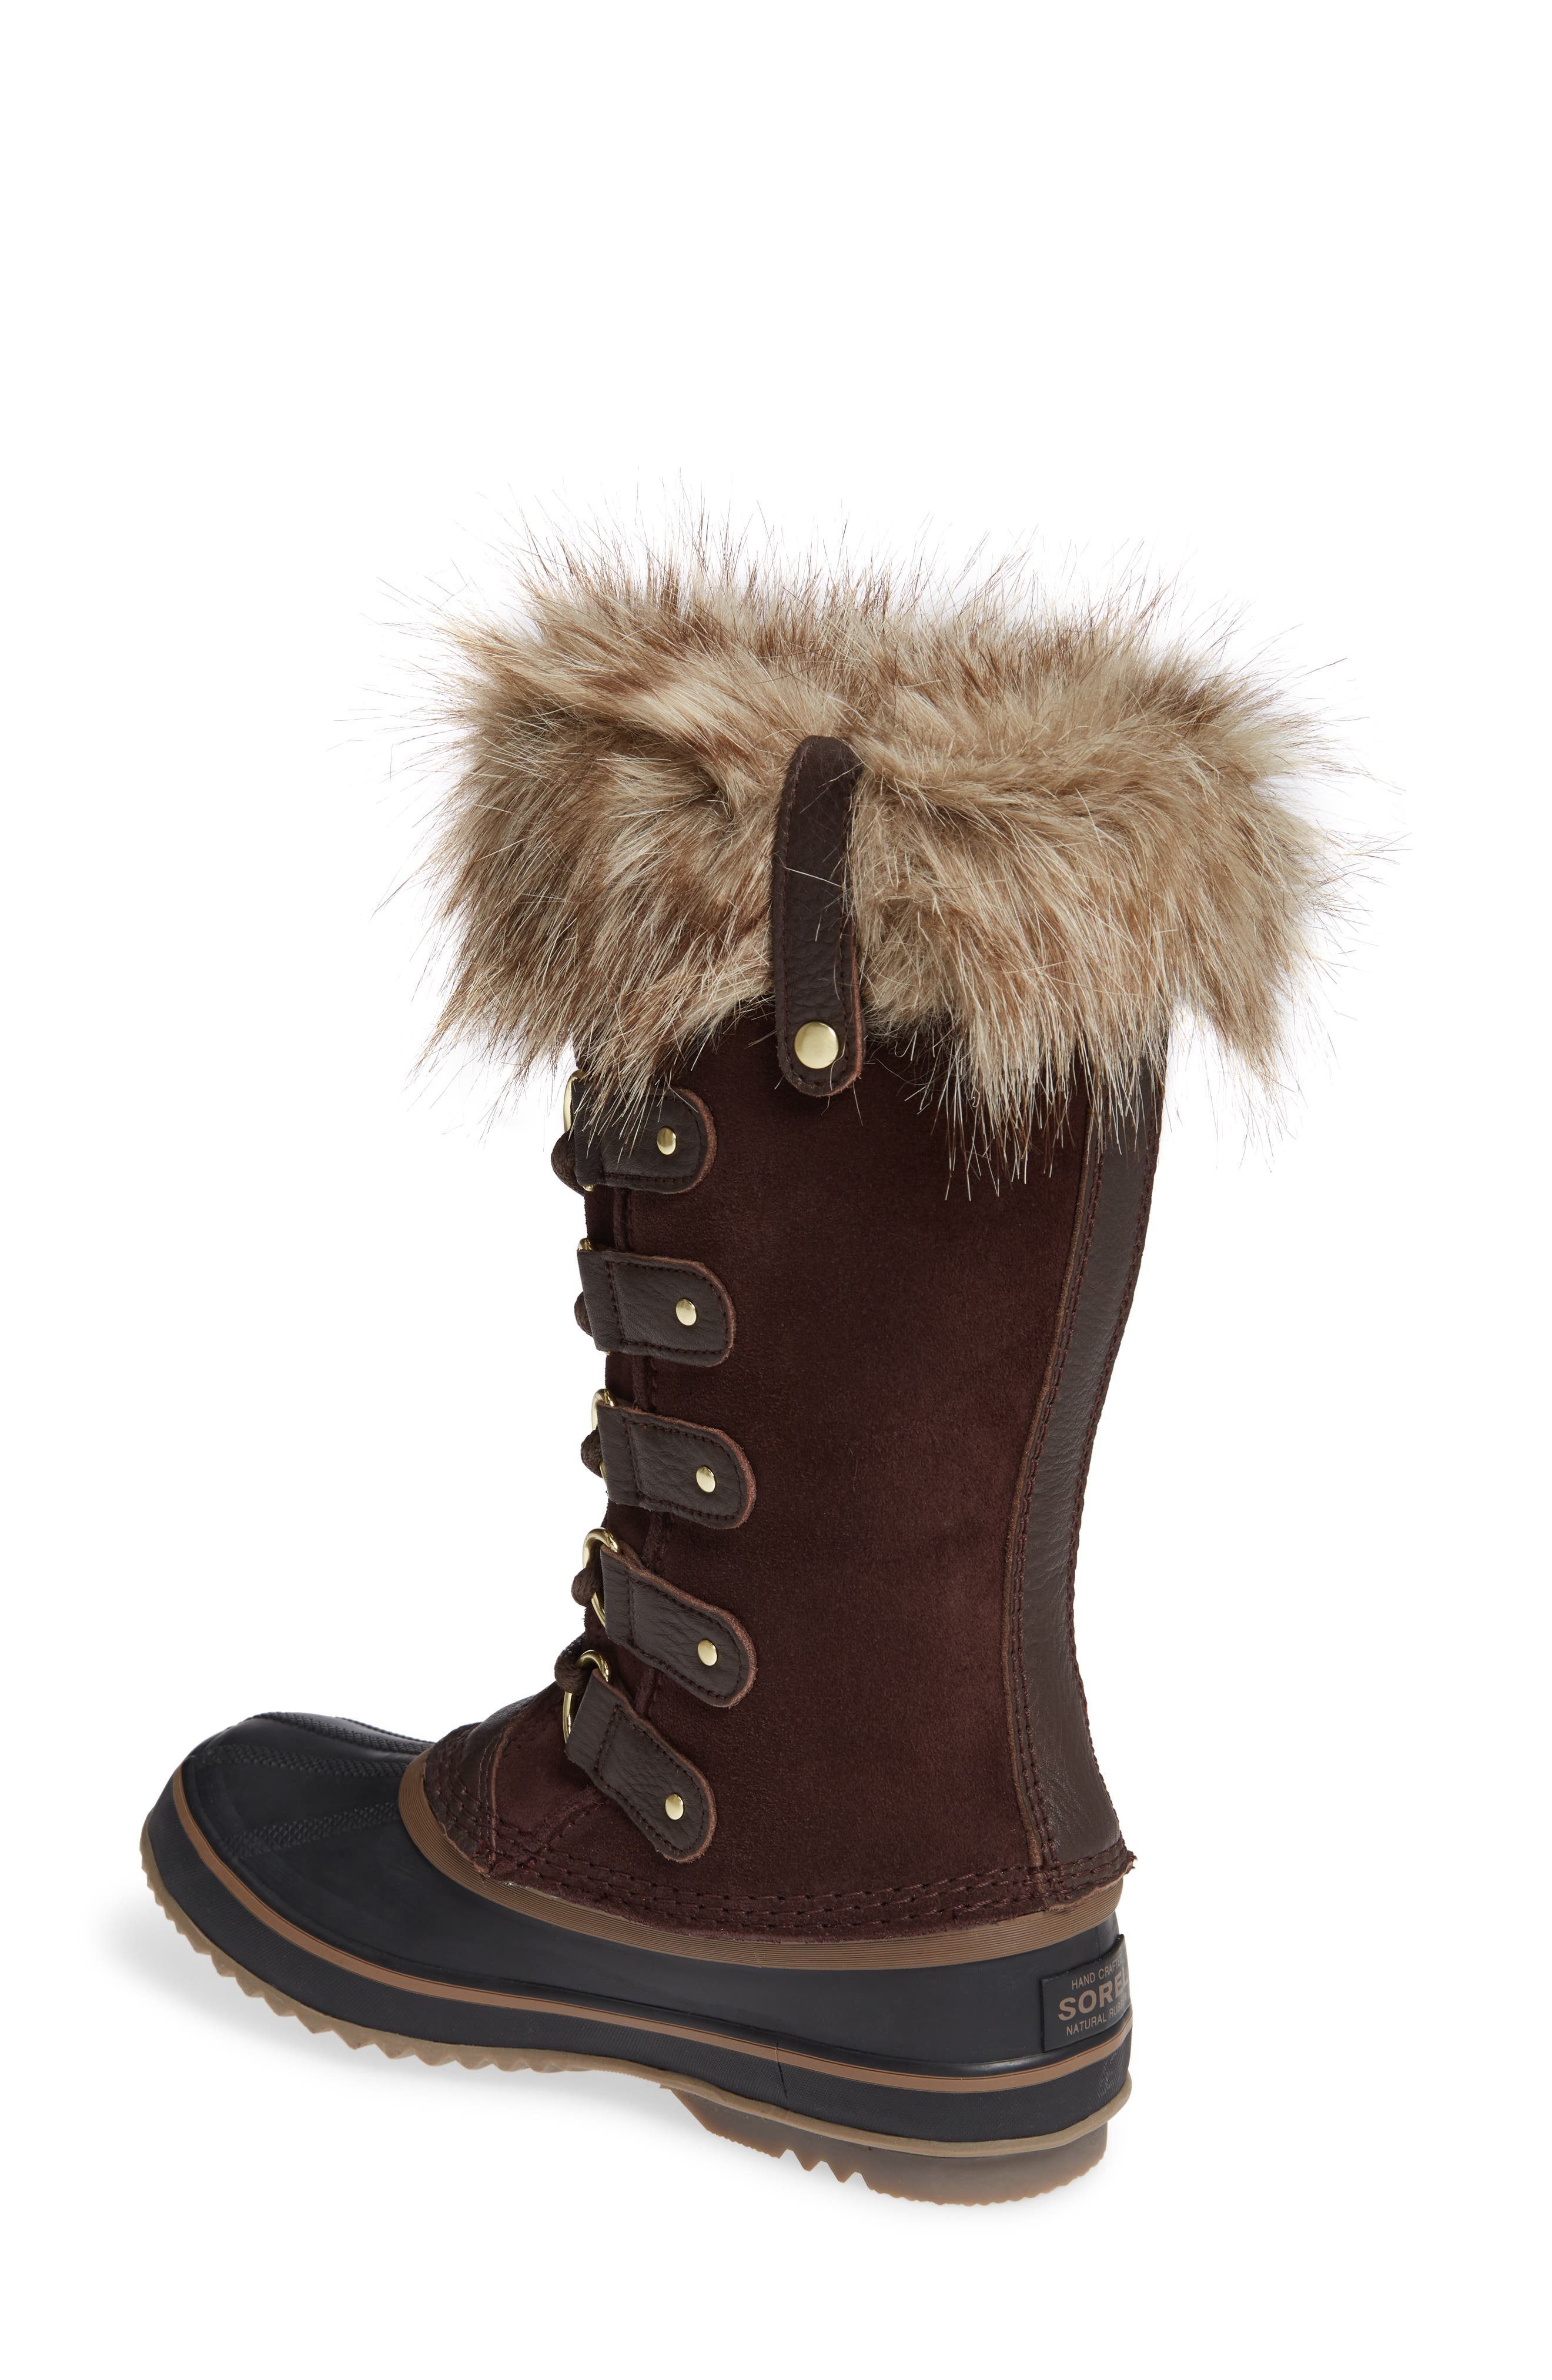 'Joan of Arctic' Waterproof Snow Boot,                             Alternate thumbnail 2, color,                             CATTAIL